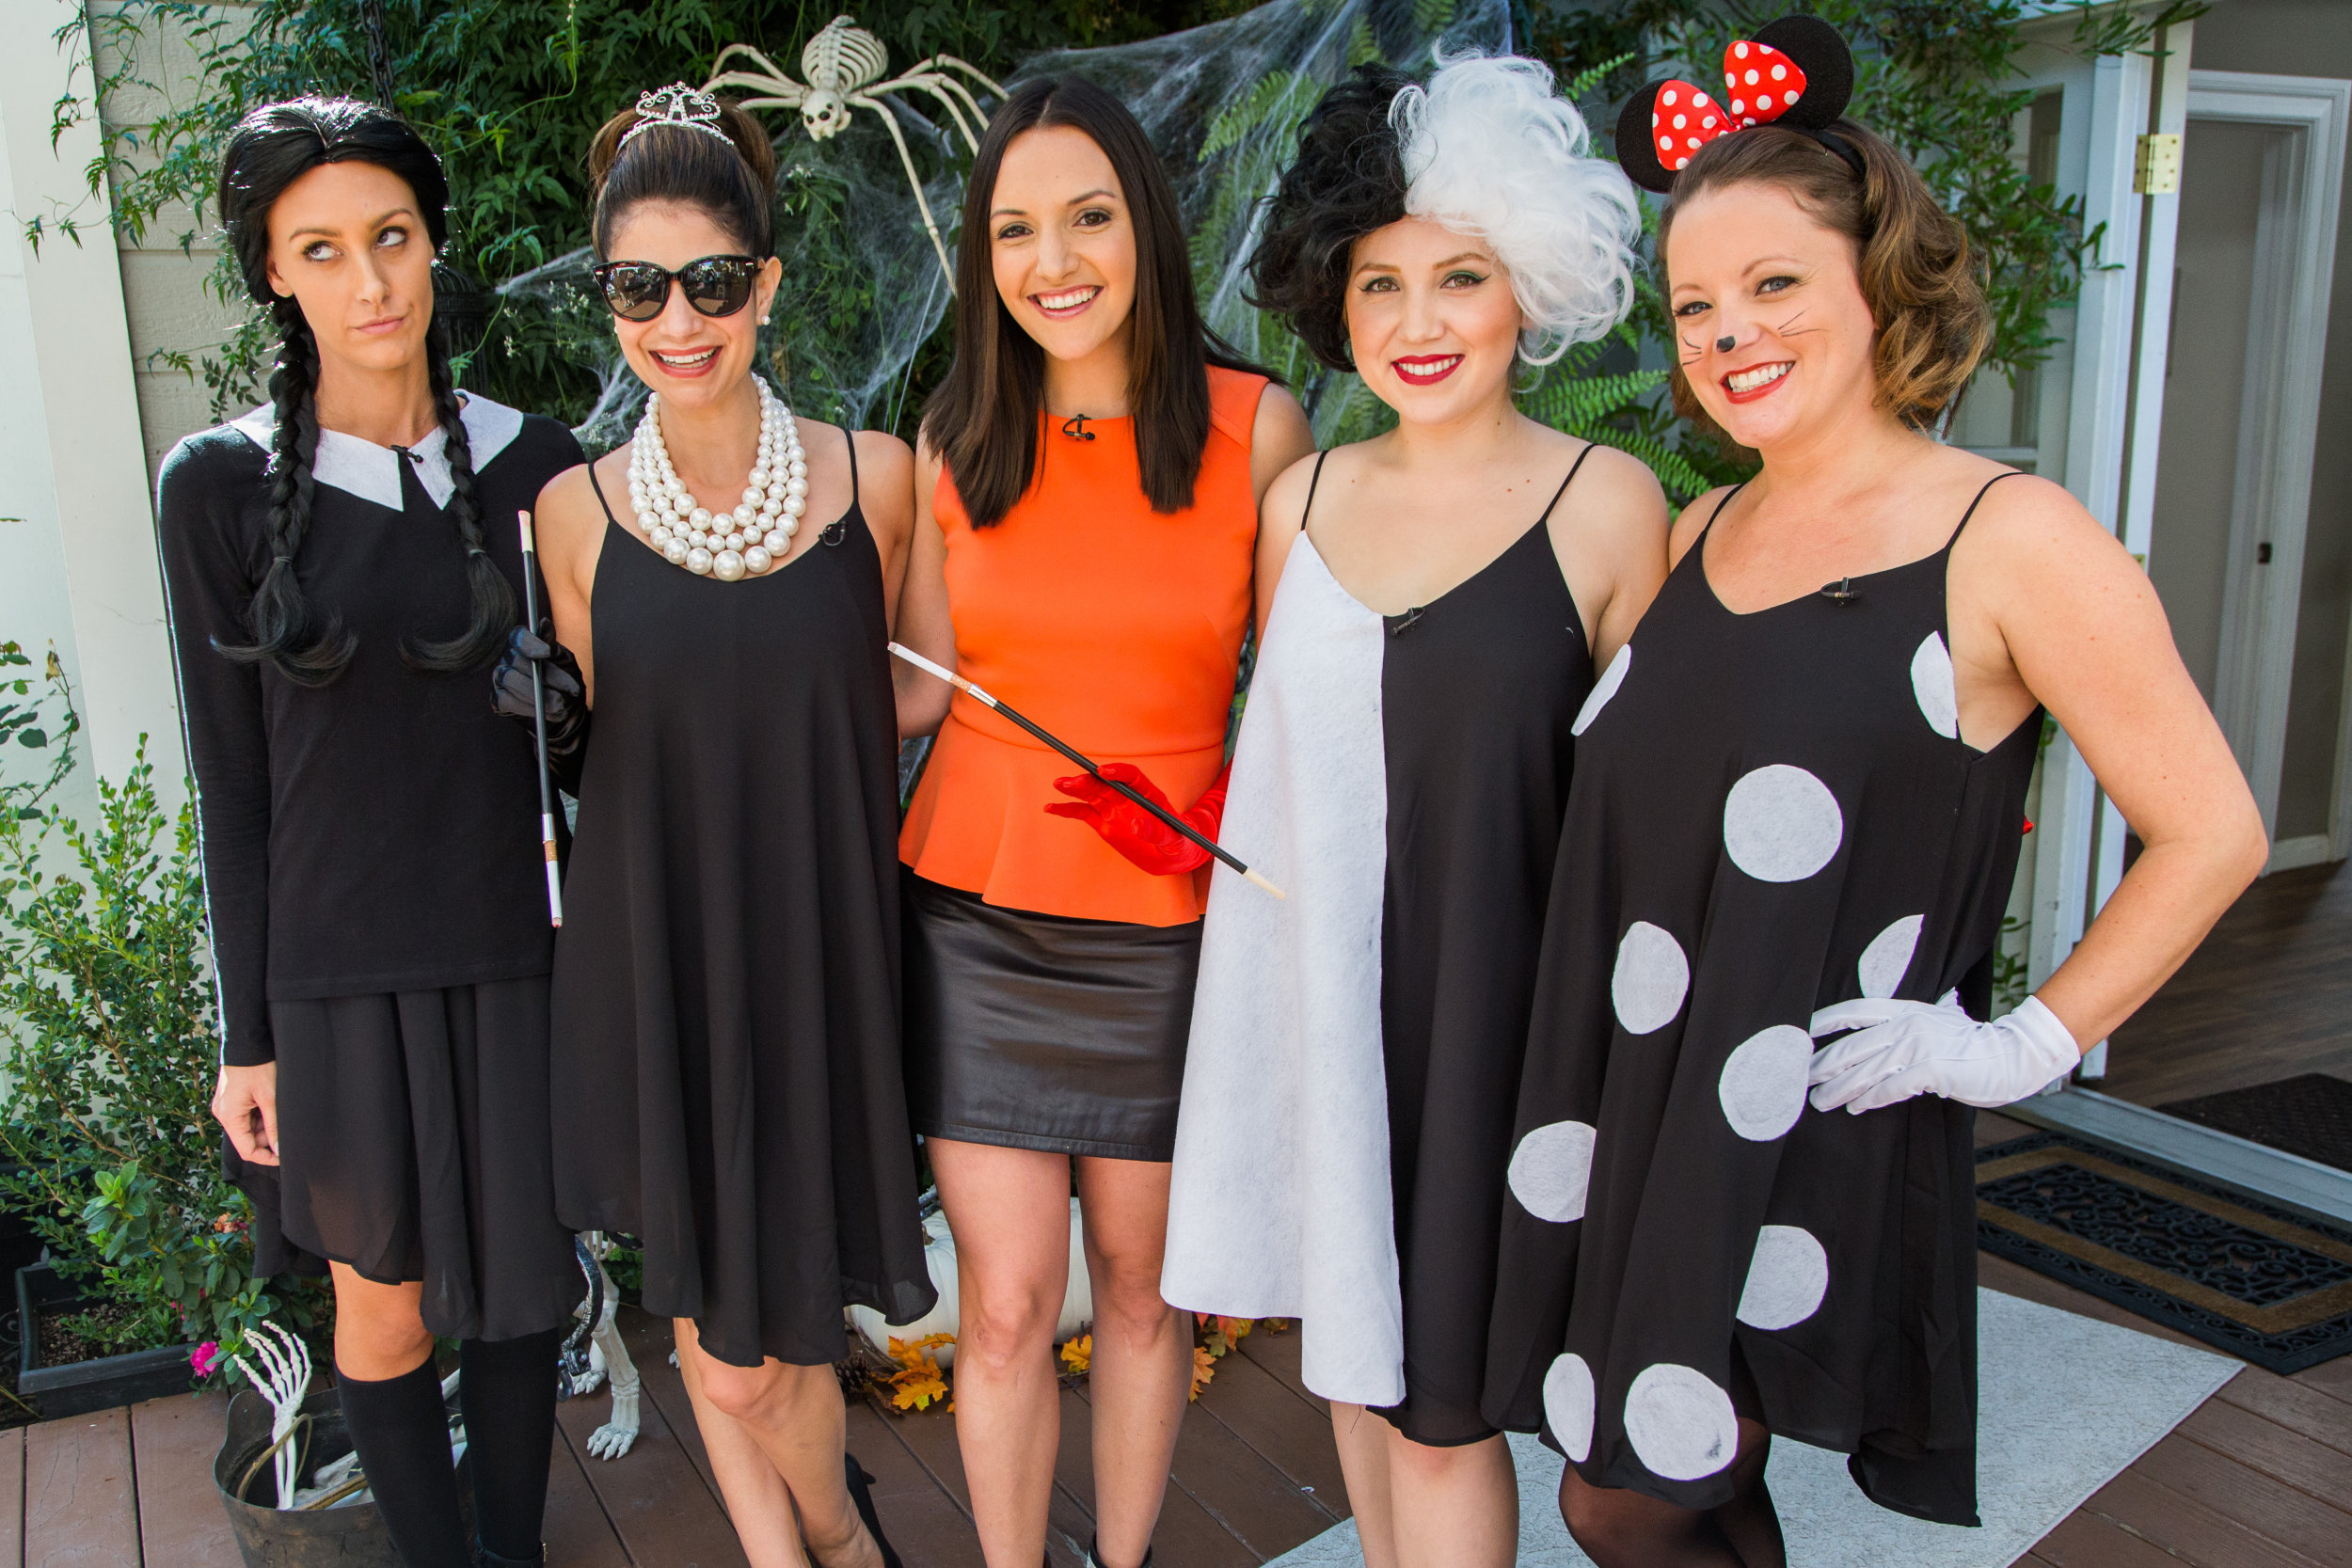 Four Costume Ideas with One Little Black Dress - Home & Family - Video